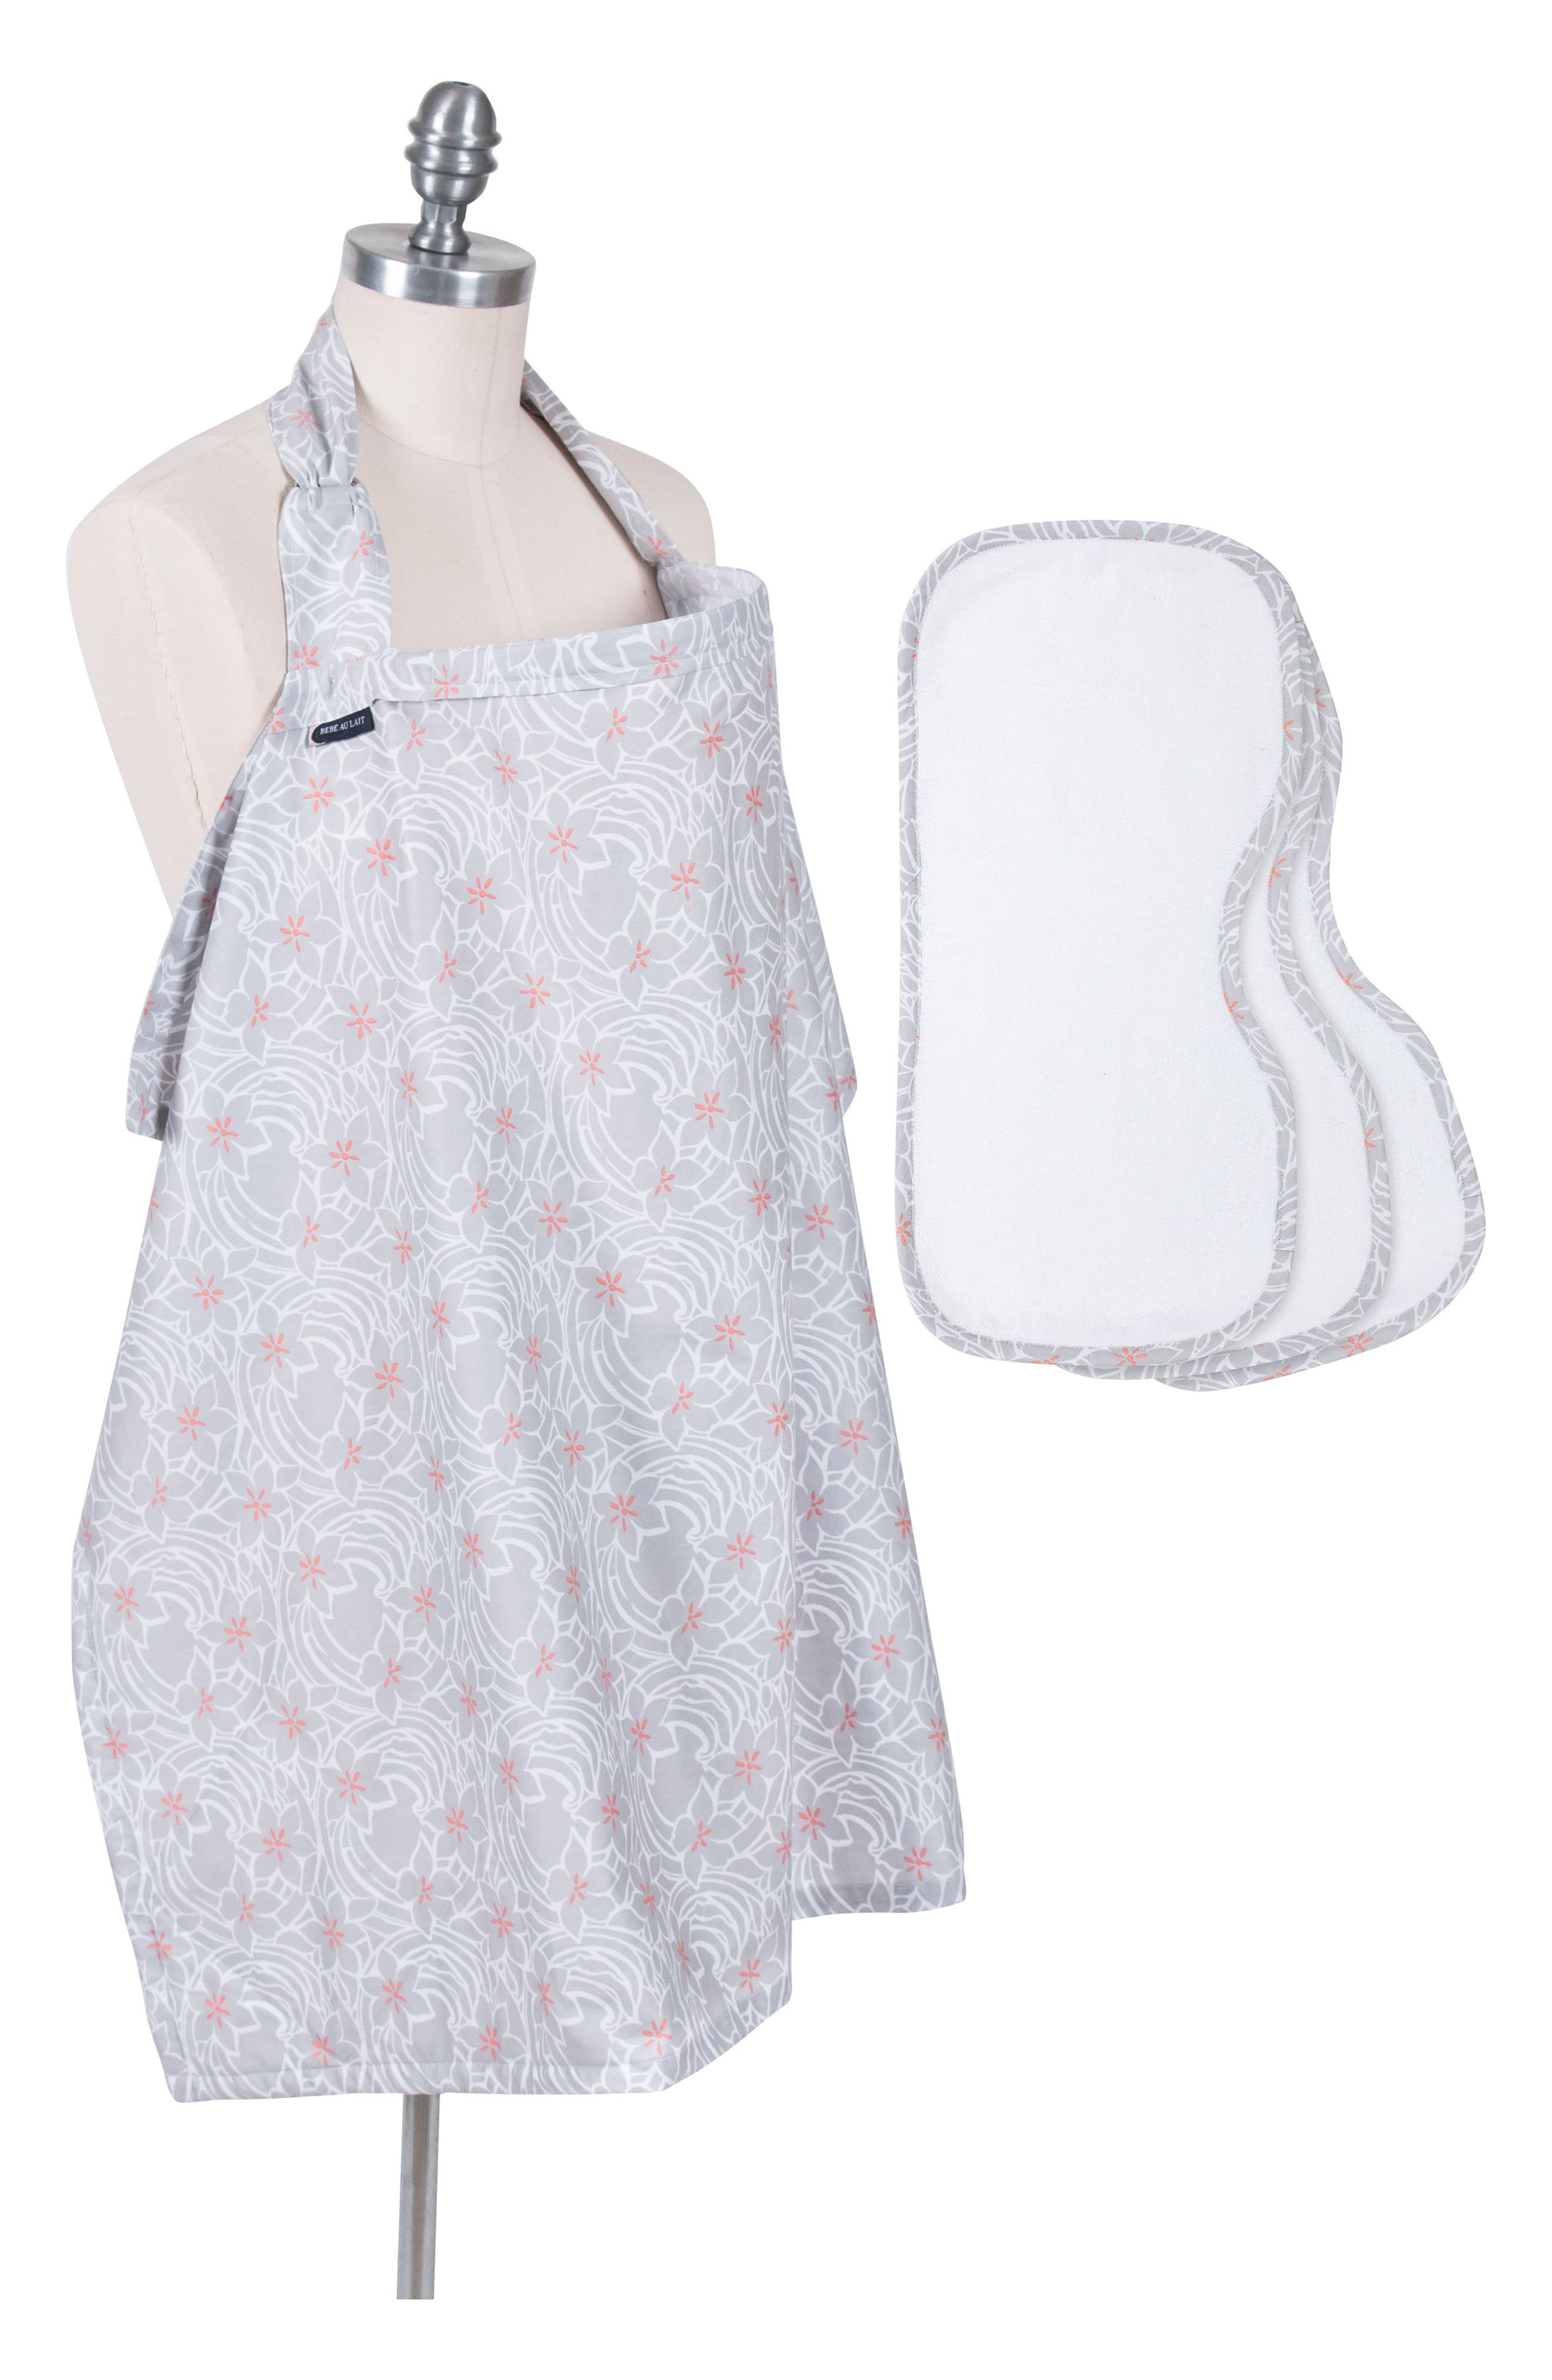 Bébé au Lait Nursing Cover & Burp Cloth Set